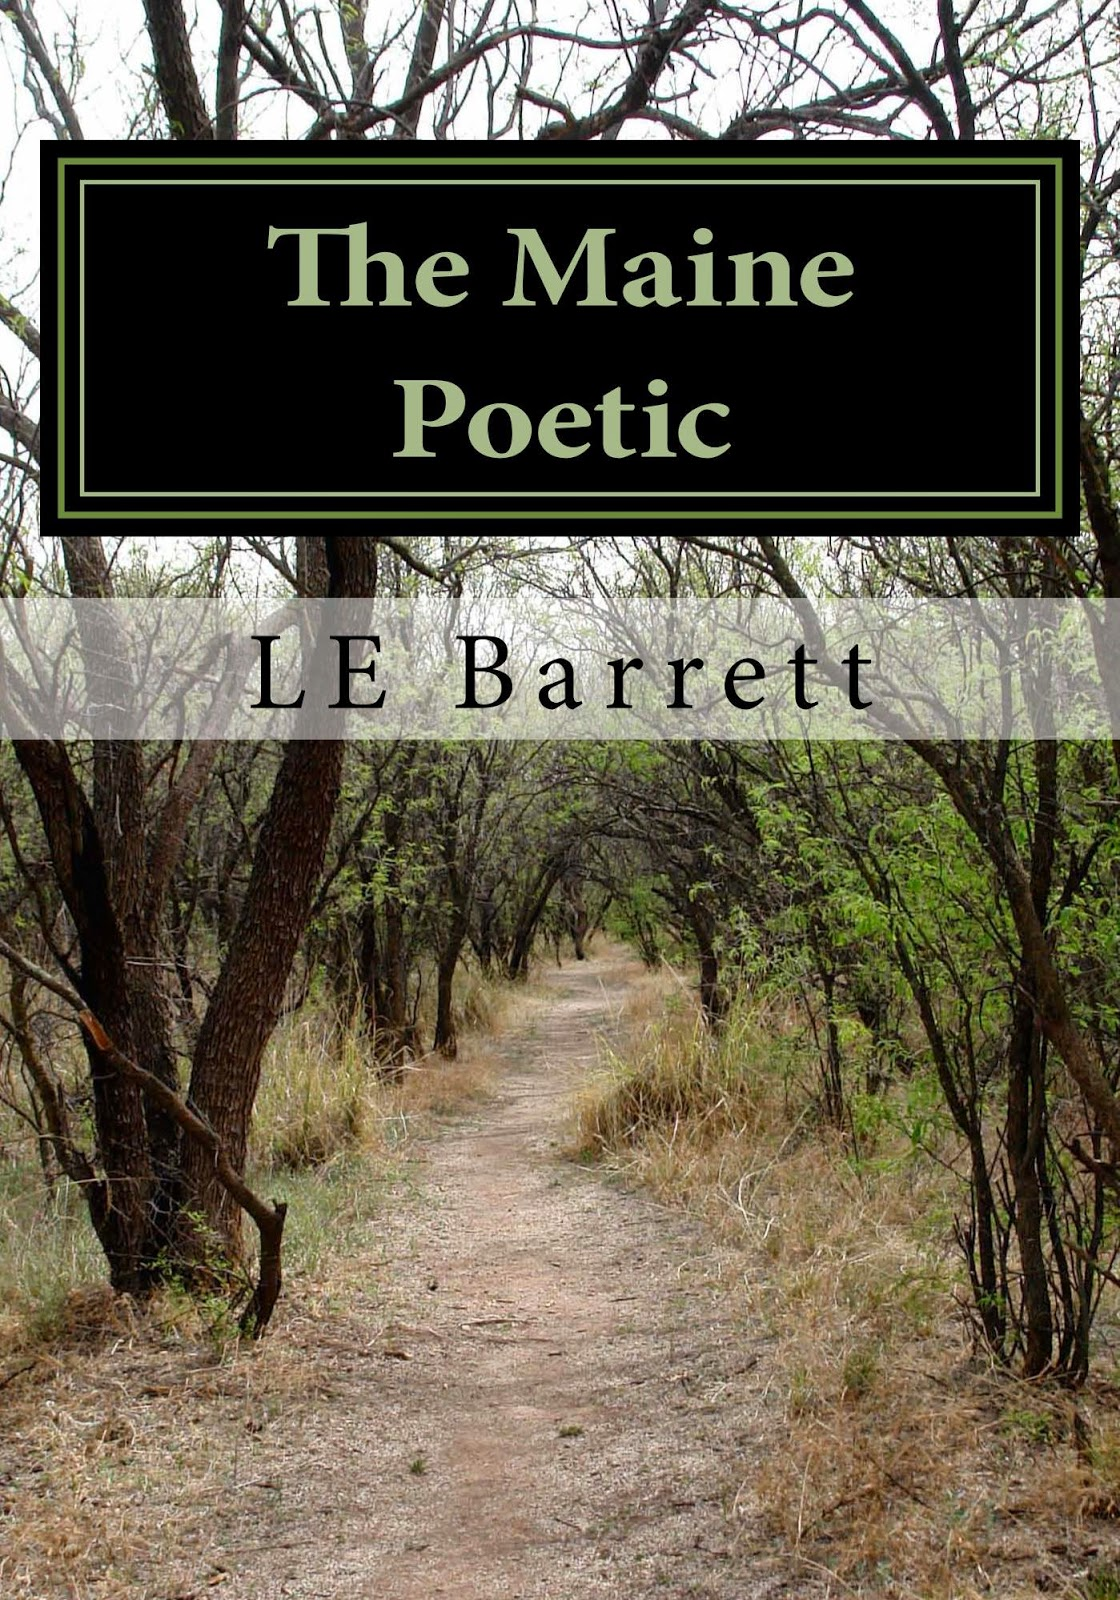 http://www.amazon.com/Maine-Poetic-Barrett-ebook/dp/B00I3R77CQ/ref=la_B00H8AZONS_1_4?s=books&ie=UTF8&qid=1396634139&sr=1-4